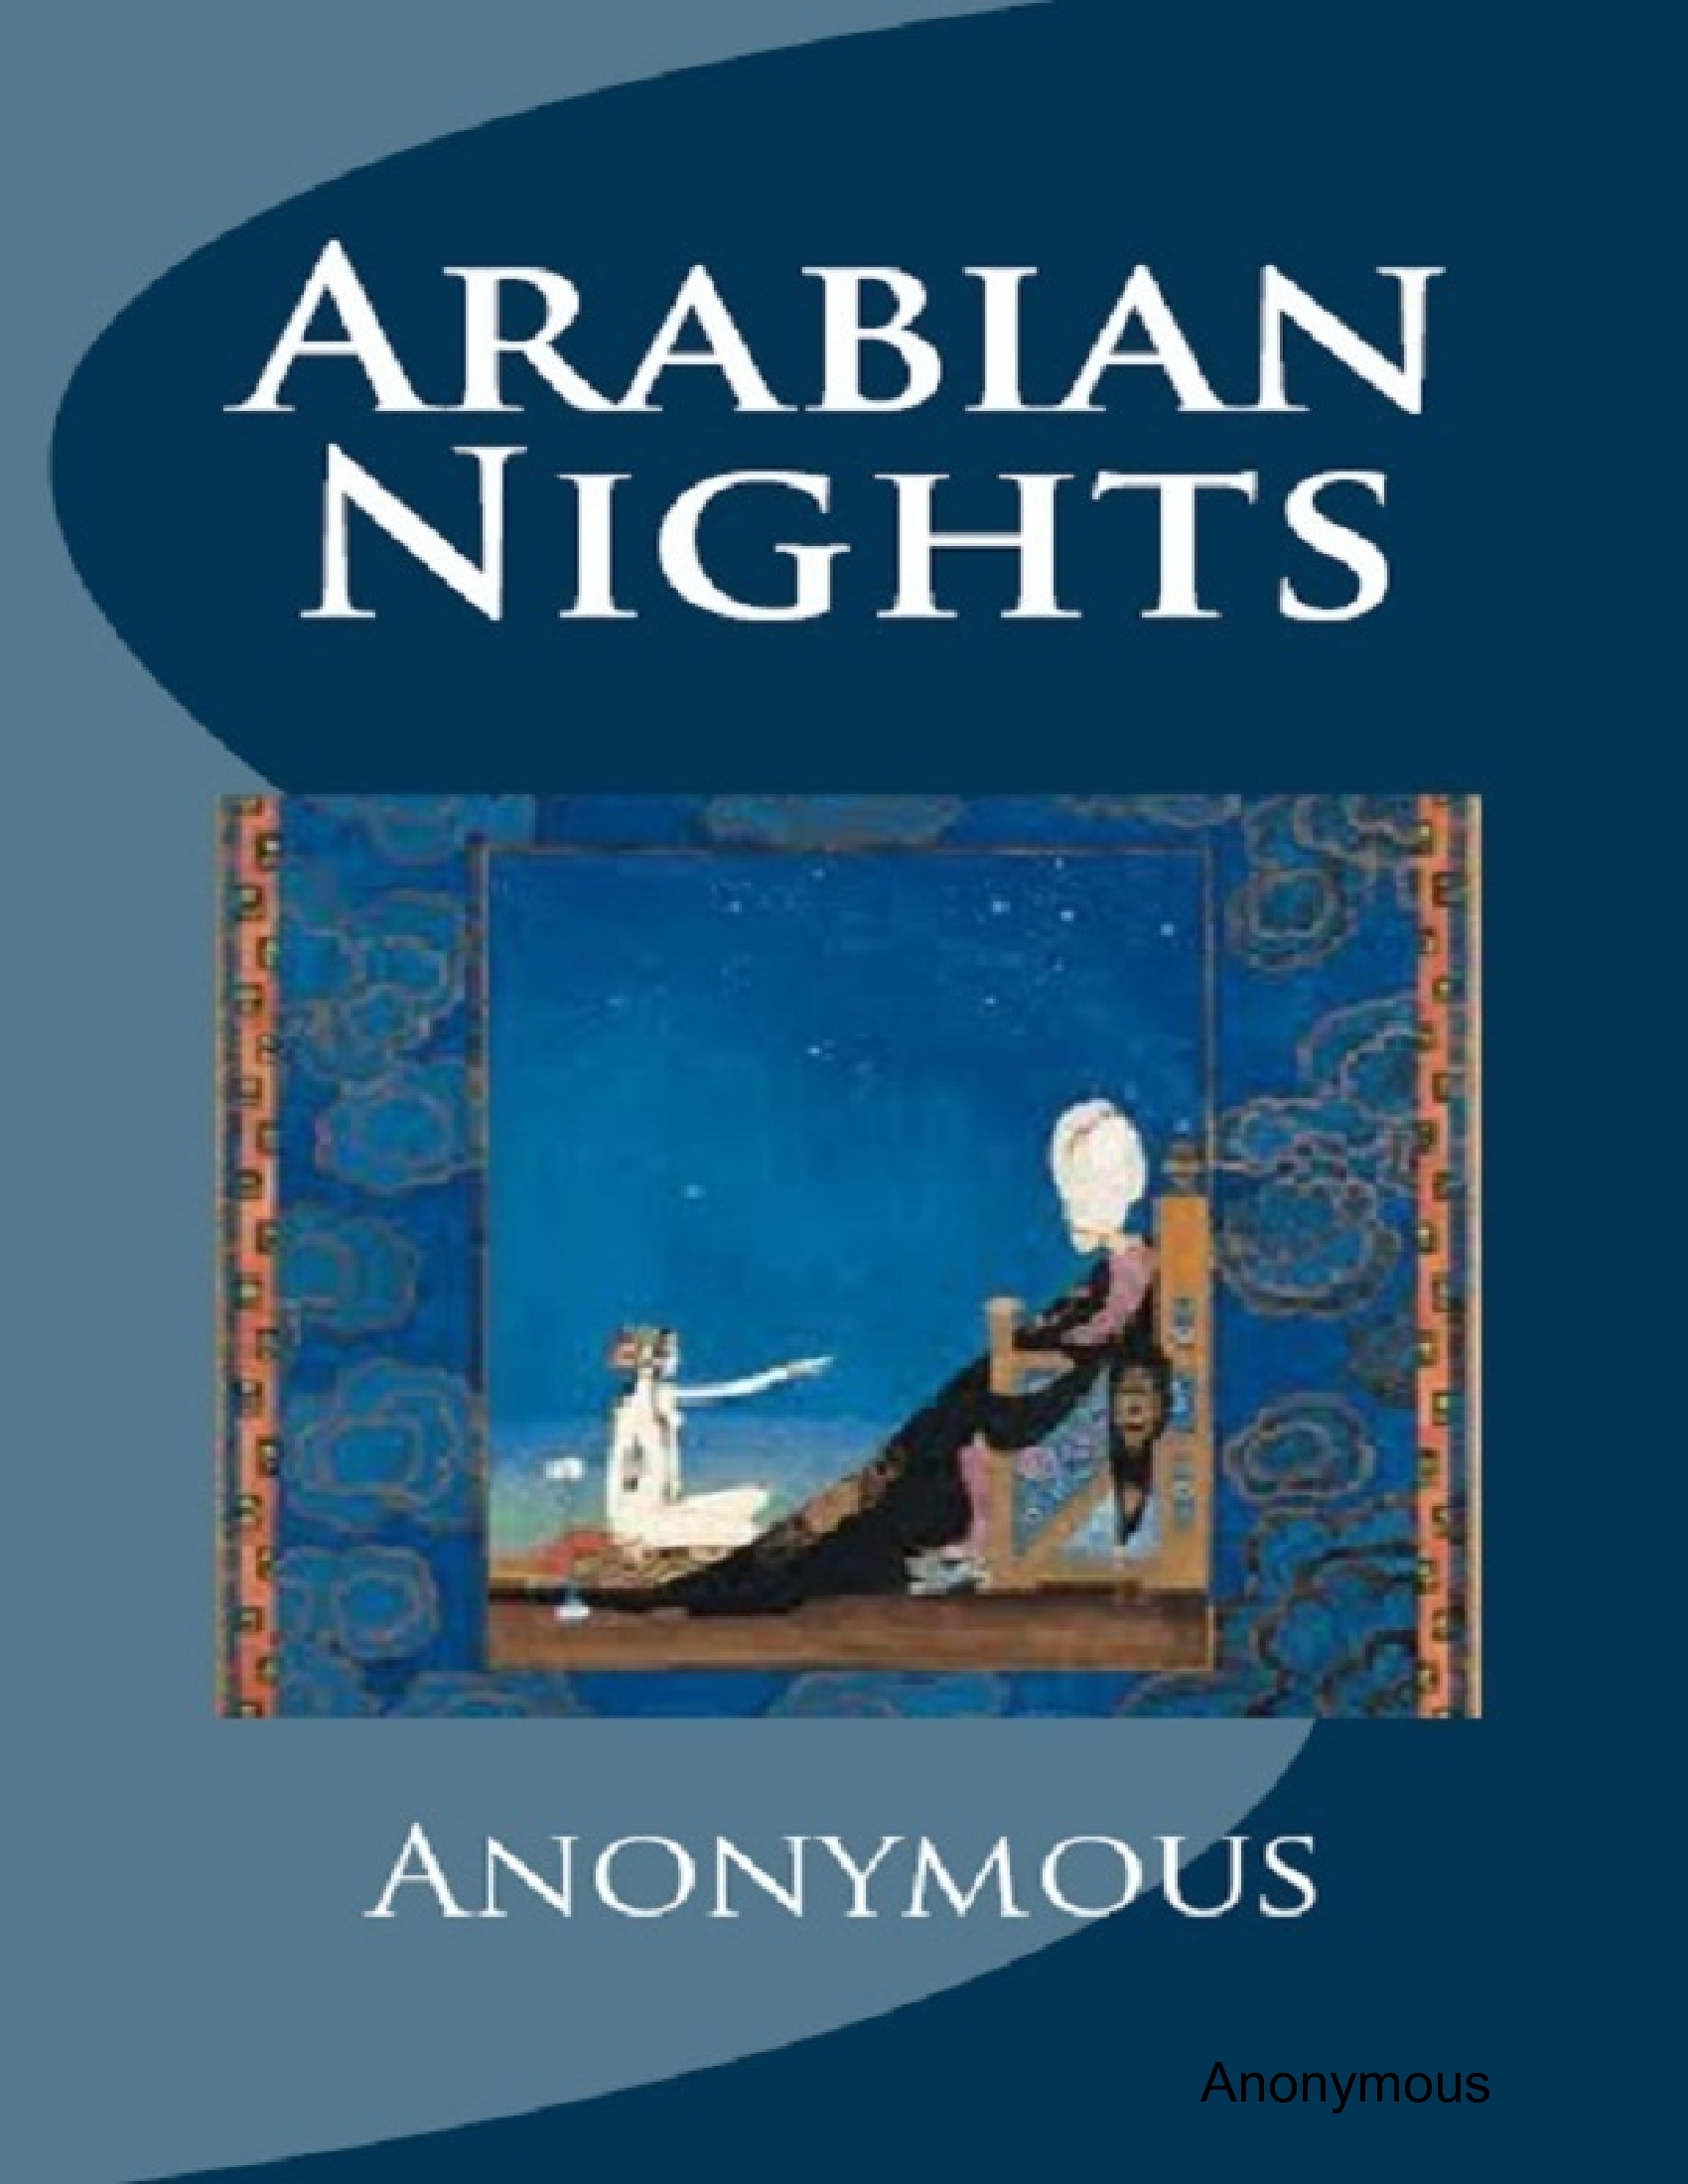 an overview of a night to remember and arabian nights stories The arabian nights has 60,243 every night i would read it and disappear the arabian nights is sort of a collection of short stories told in the arabian.